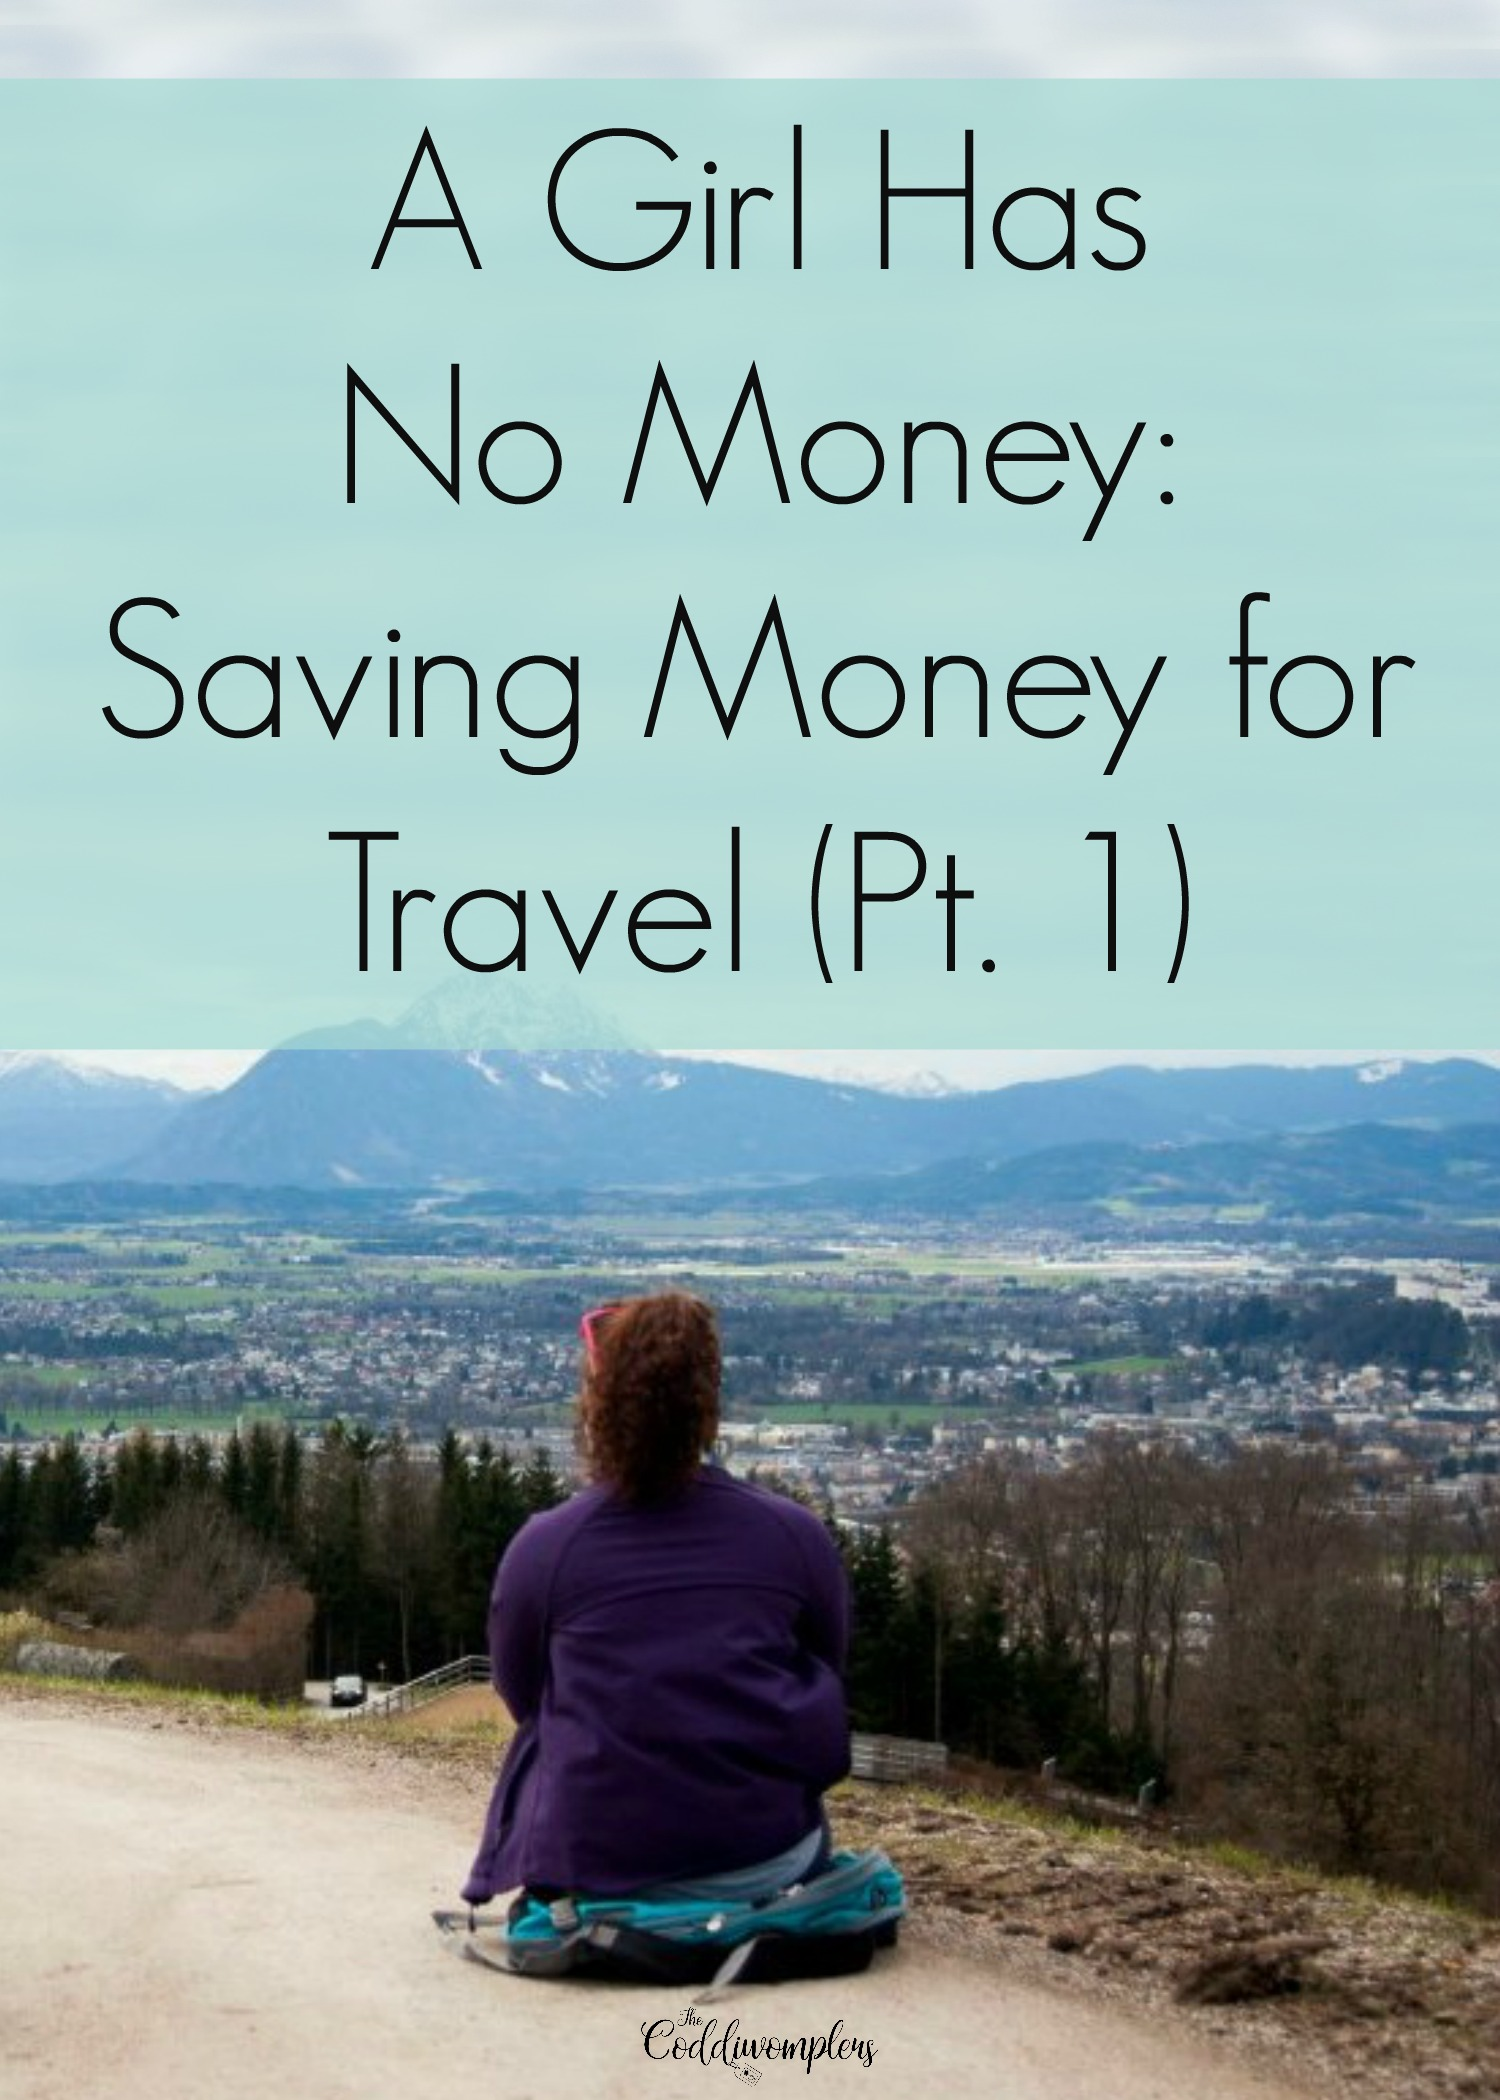 A Girl Has No Money: Saving Money for Travel (Pt. 1)